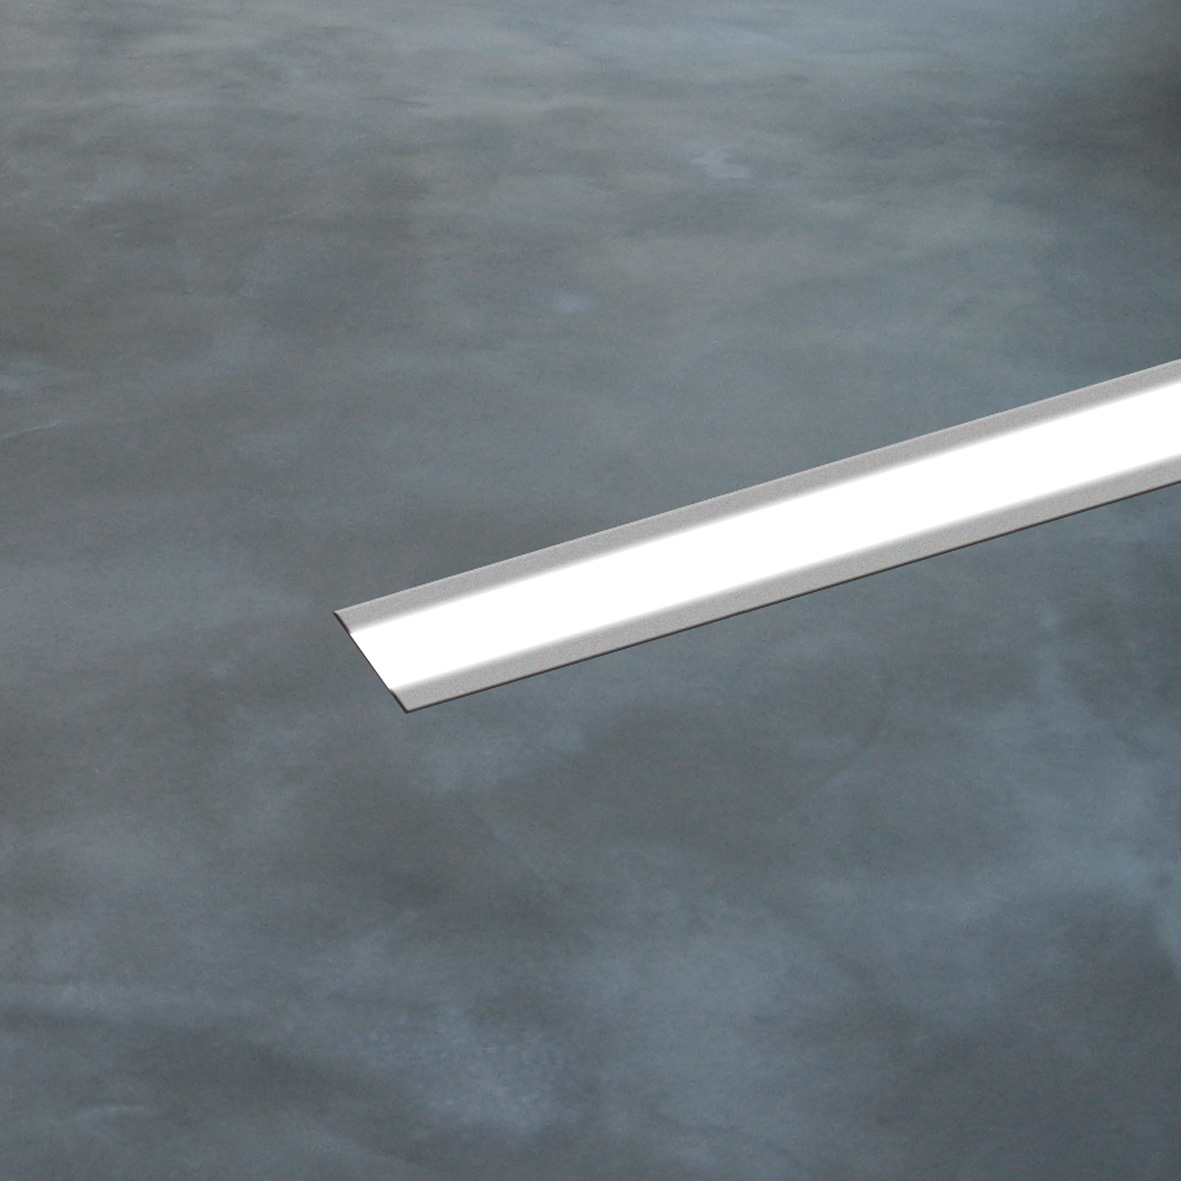 Linea LED - carrabile - Disano Illuminazione spa